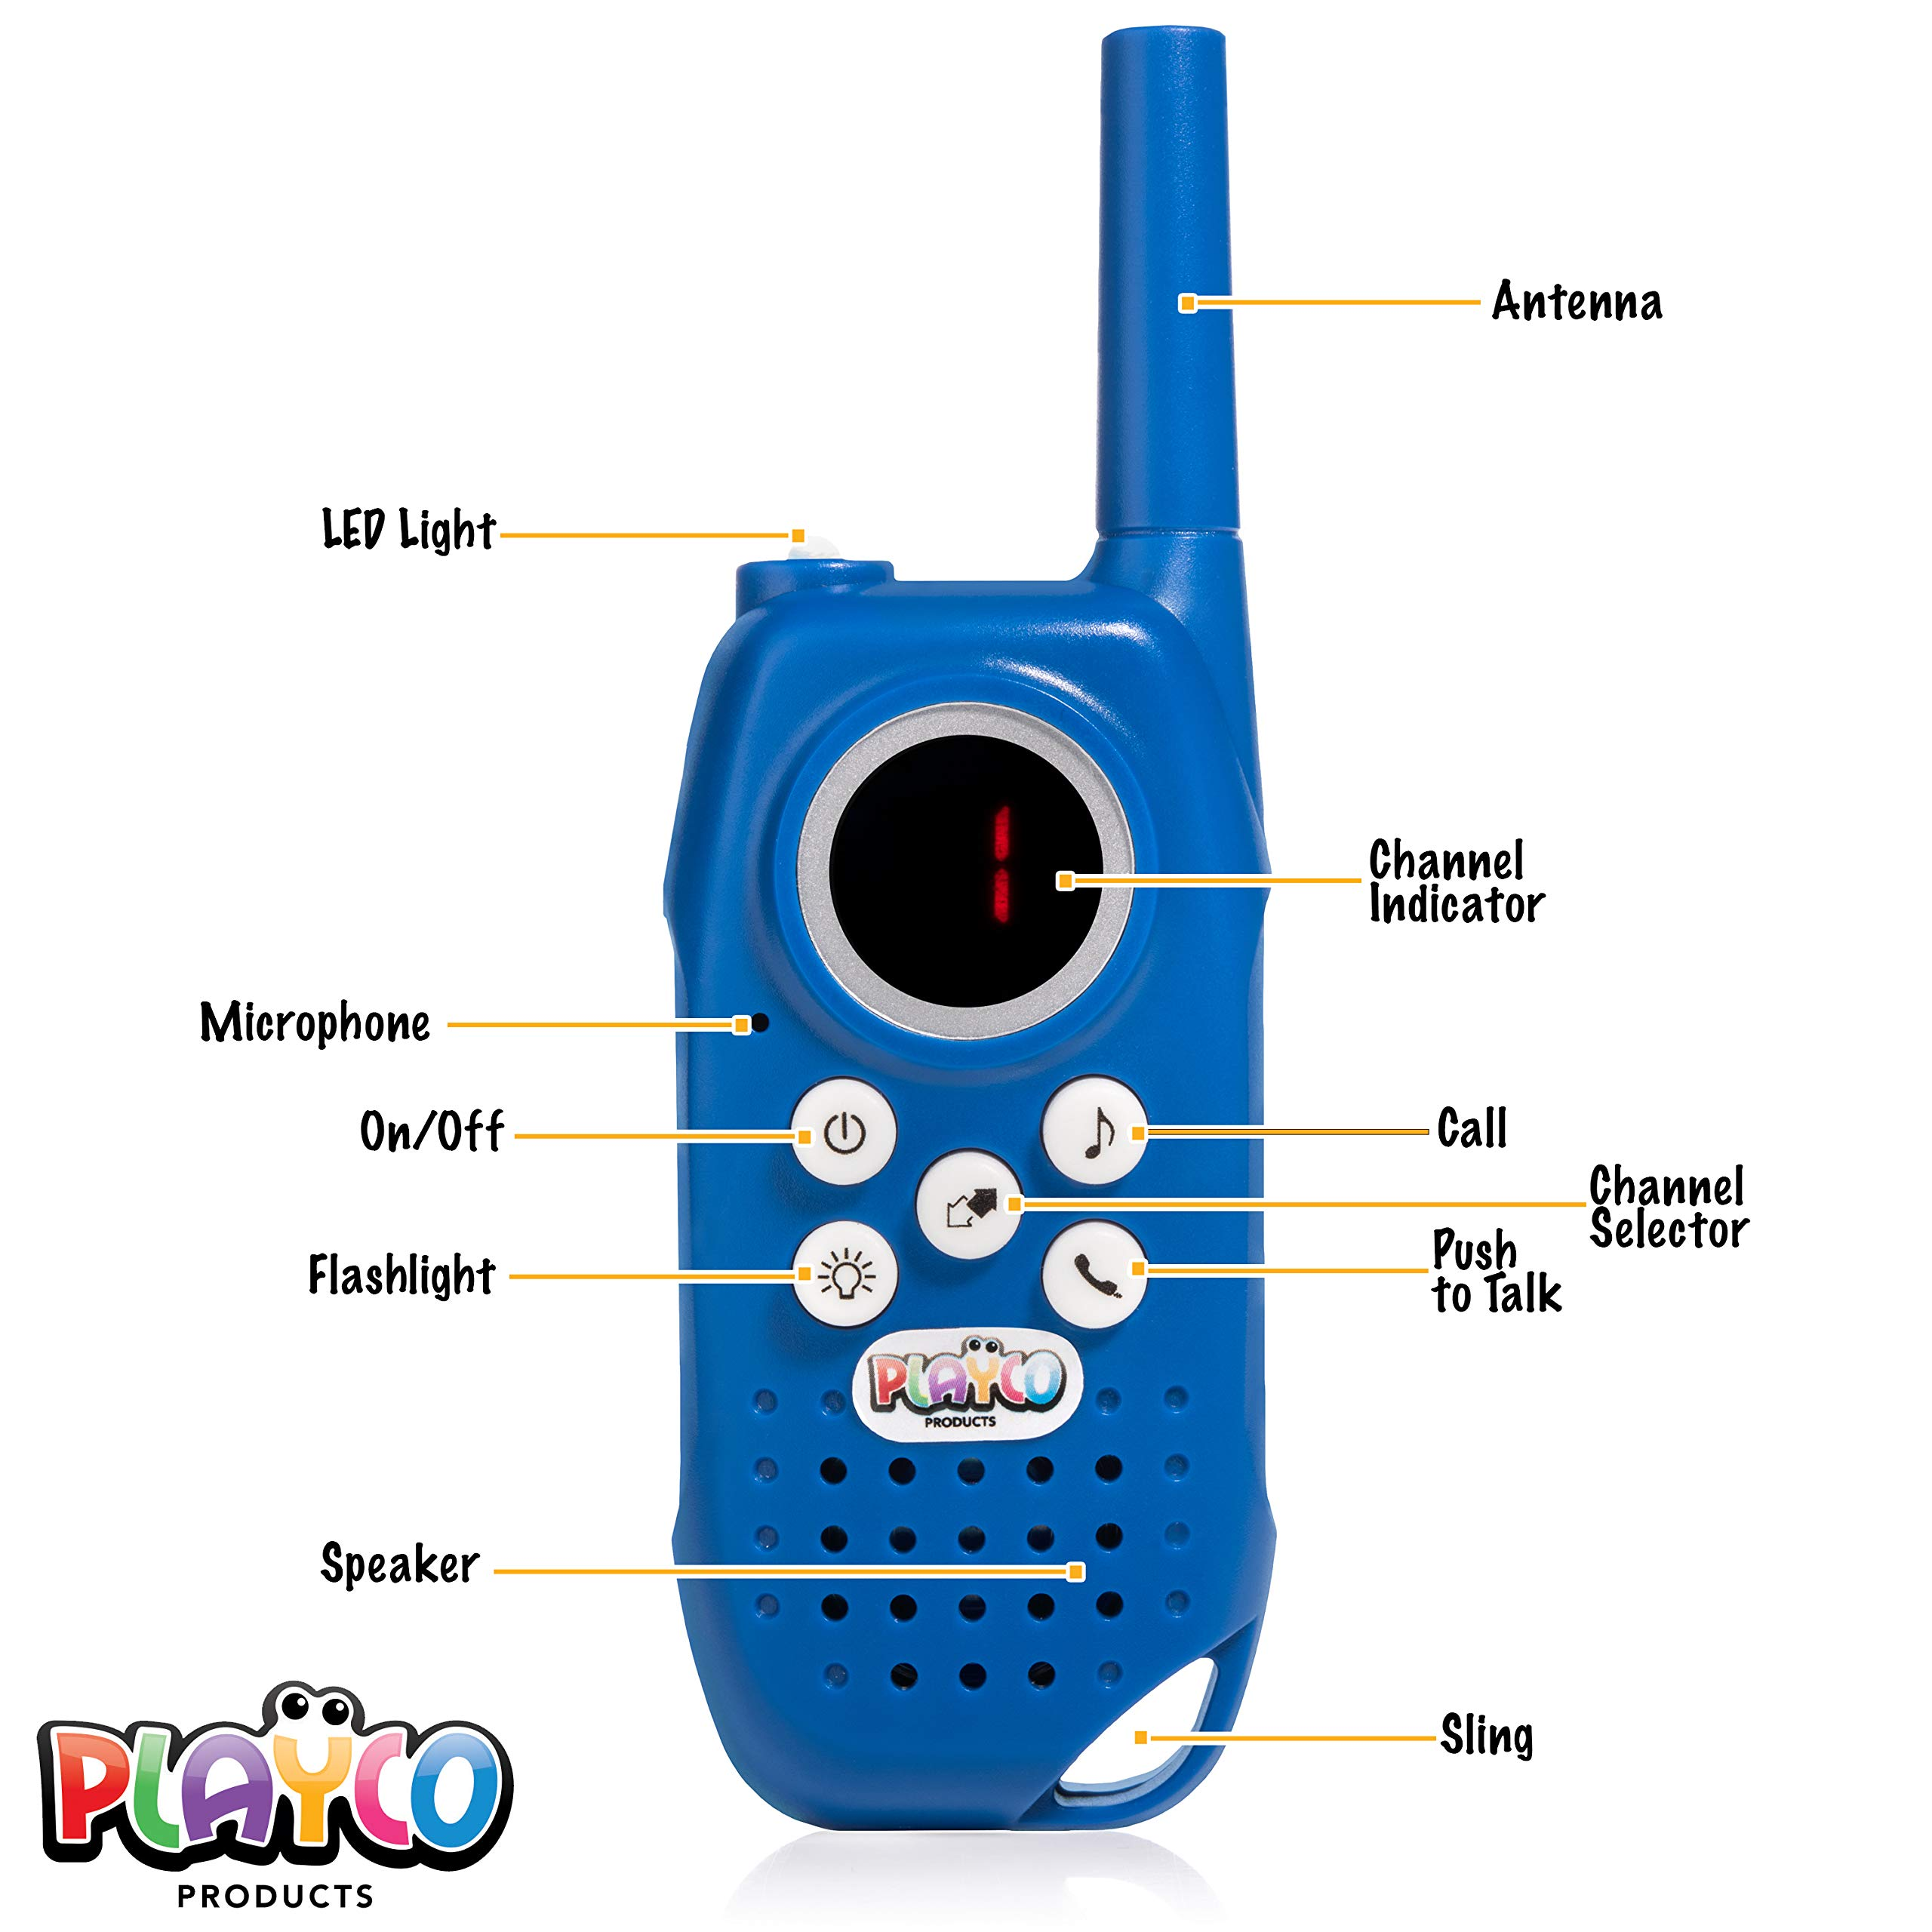 Playco Walkie Talkies and Binoculars for Kids - 2 Mile Range, Crystal Clear Sound, 8X21 Optical Lens by Playco (Image #2)